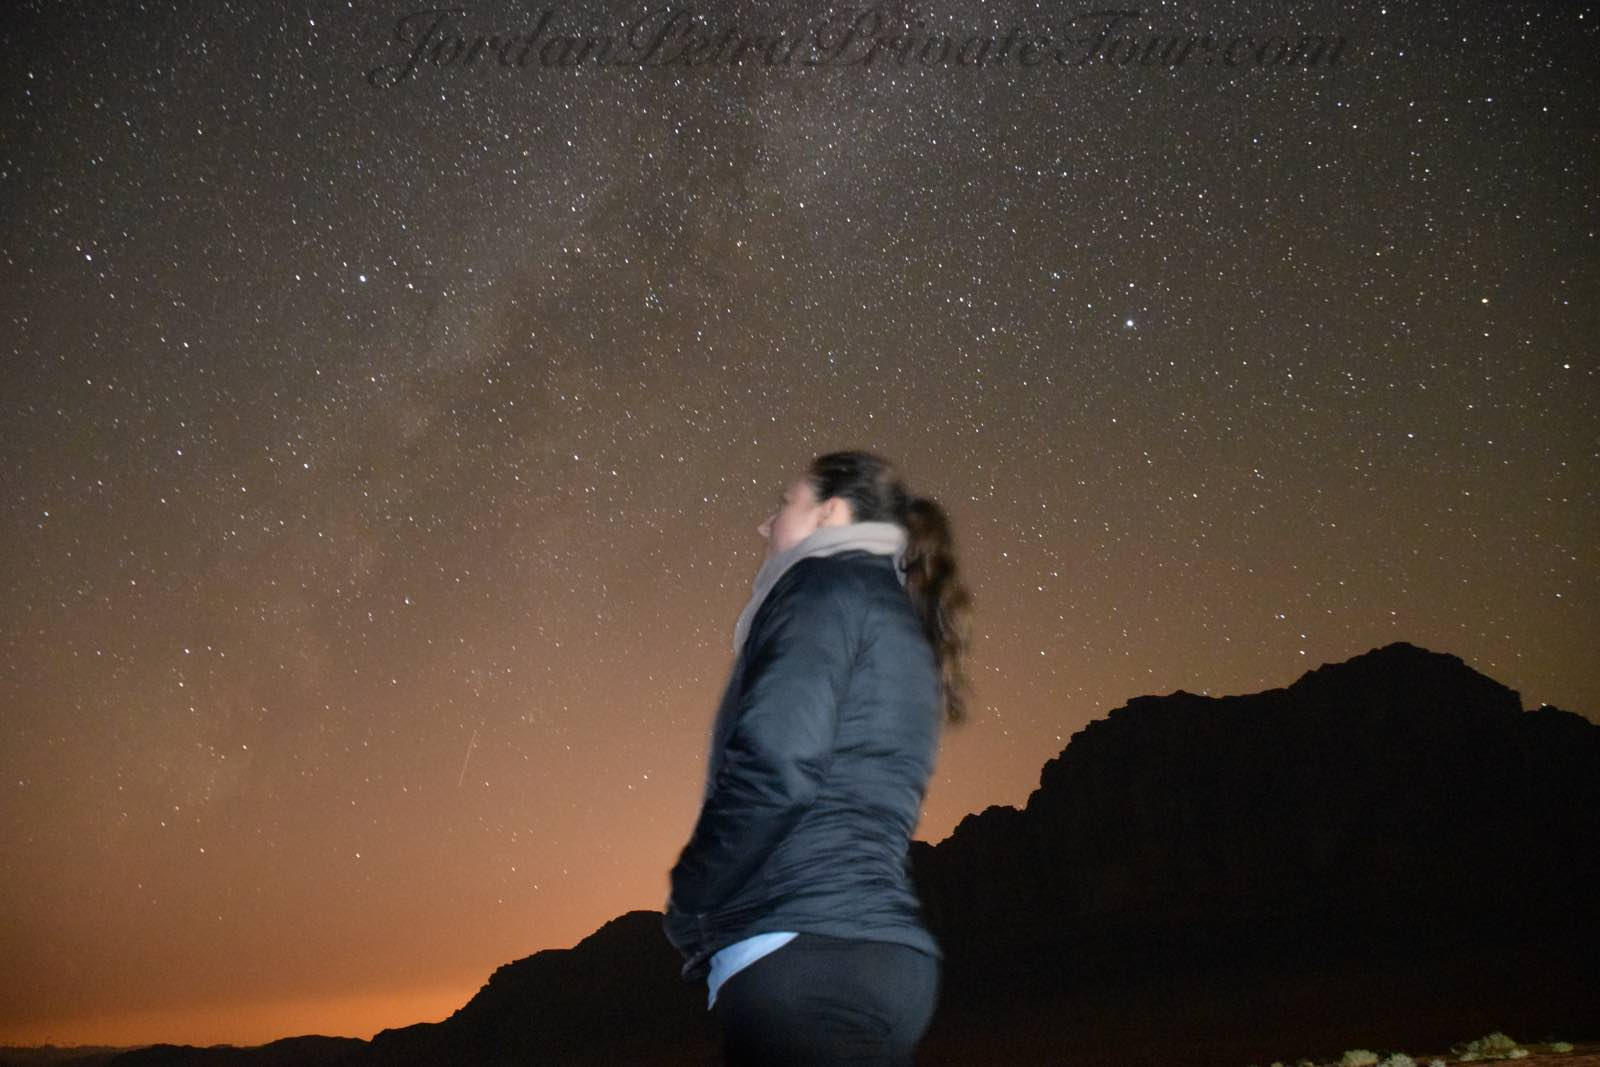 Jordan Tours stargazing at Wadi Rum